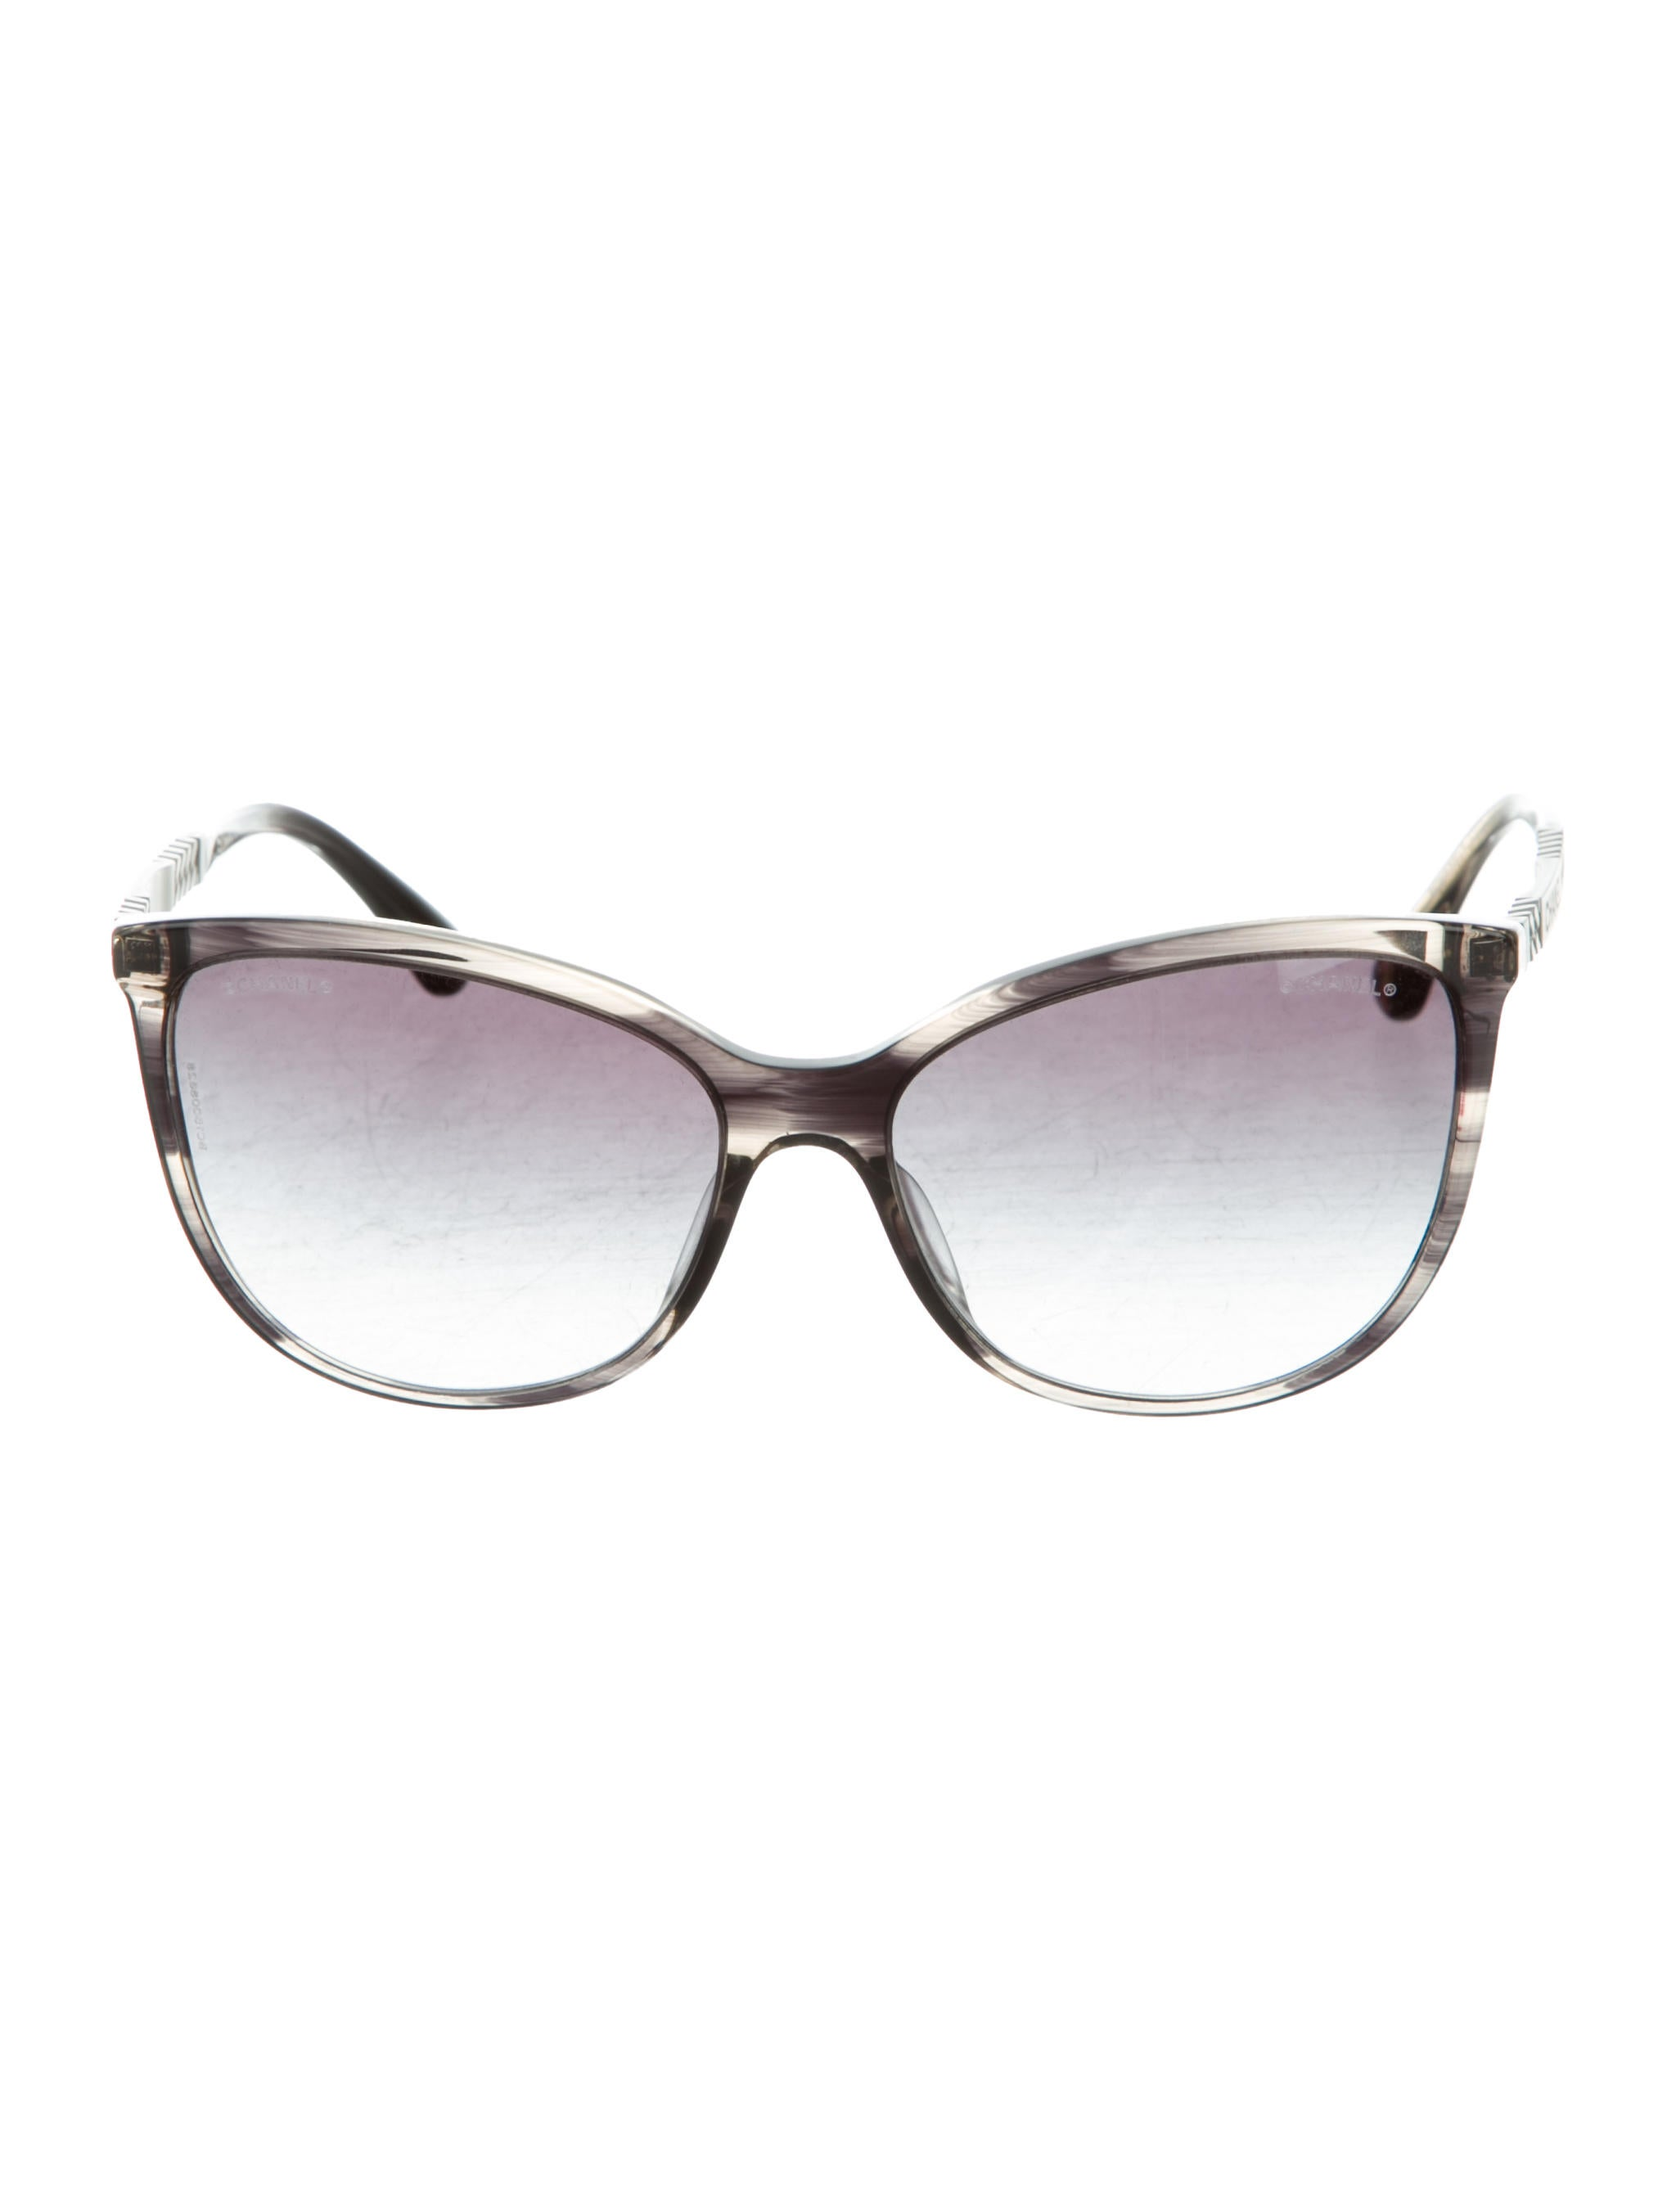 c1a52b39aa1 Chanel Sunglasses For Summer